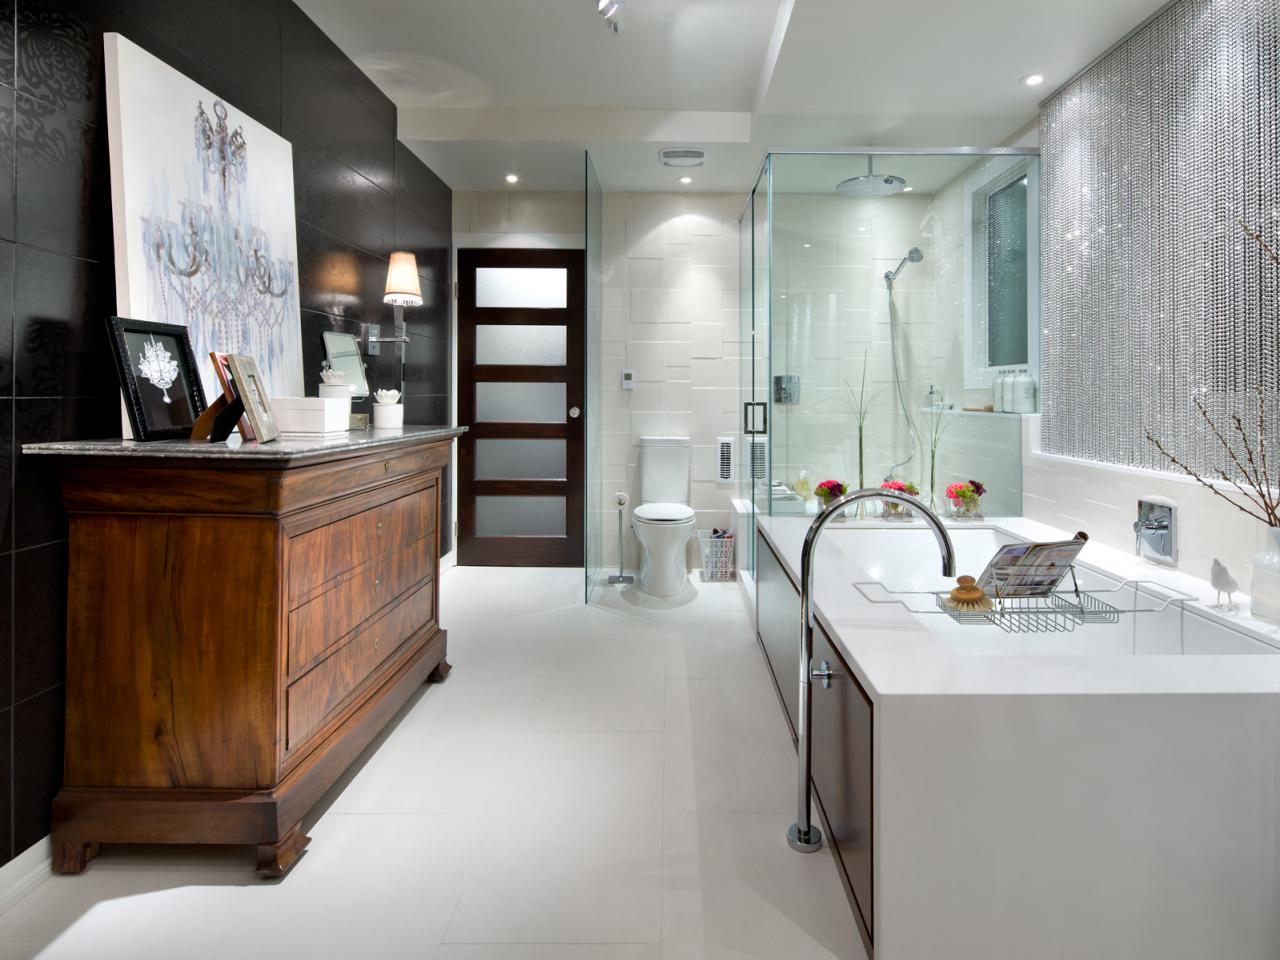 HCTAL211L_Candice-Olson-Eclectic-Luxury-Bathroom.jpg.rend.hgtvcom.1280.960